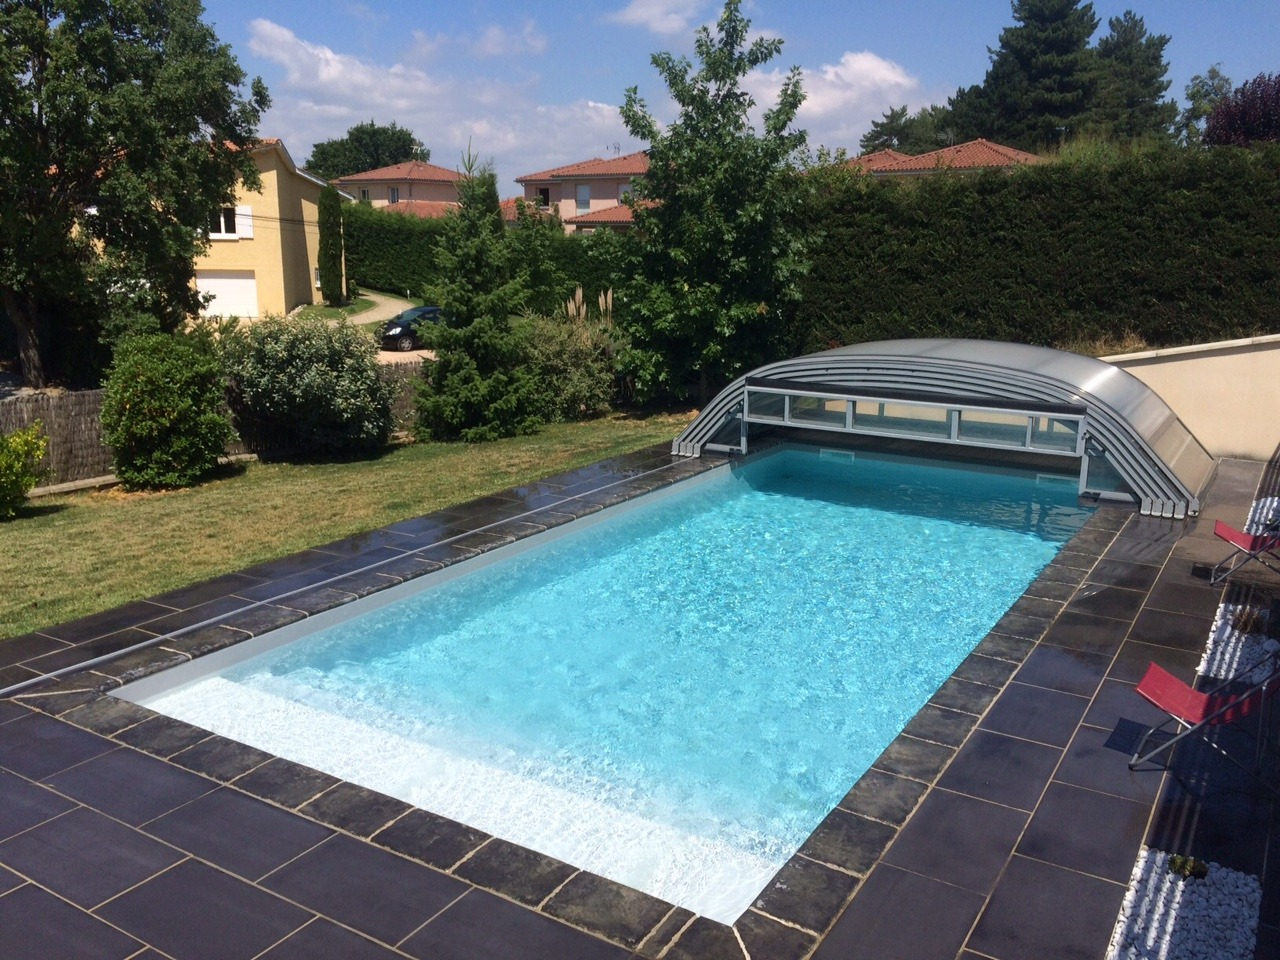 Elitys mianso abri de piscine bas t lescopique ec 39 creation for Abris de piscine sokool